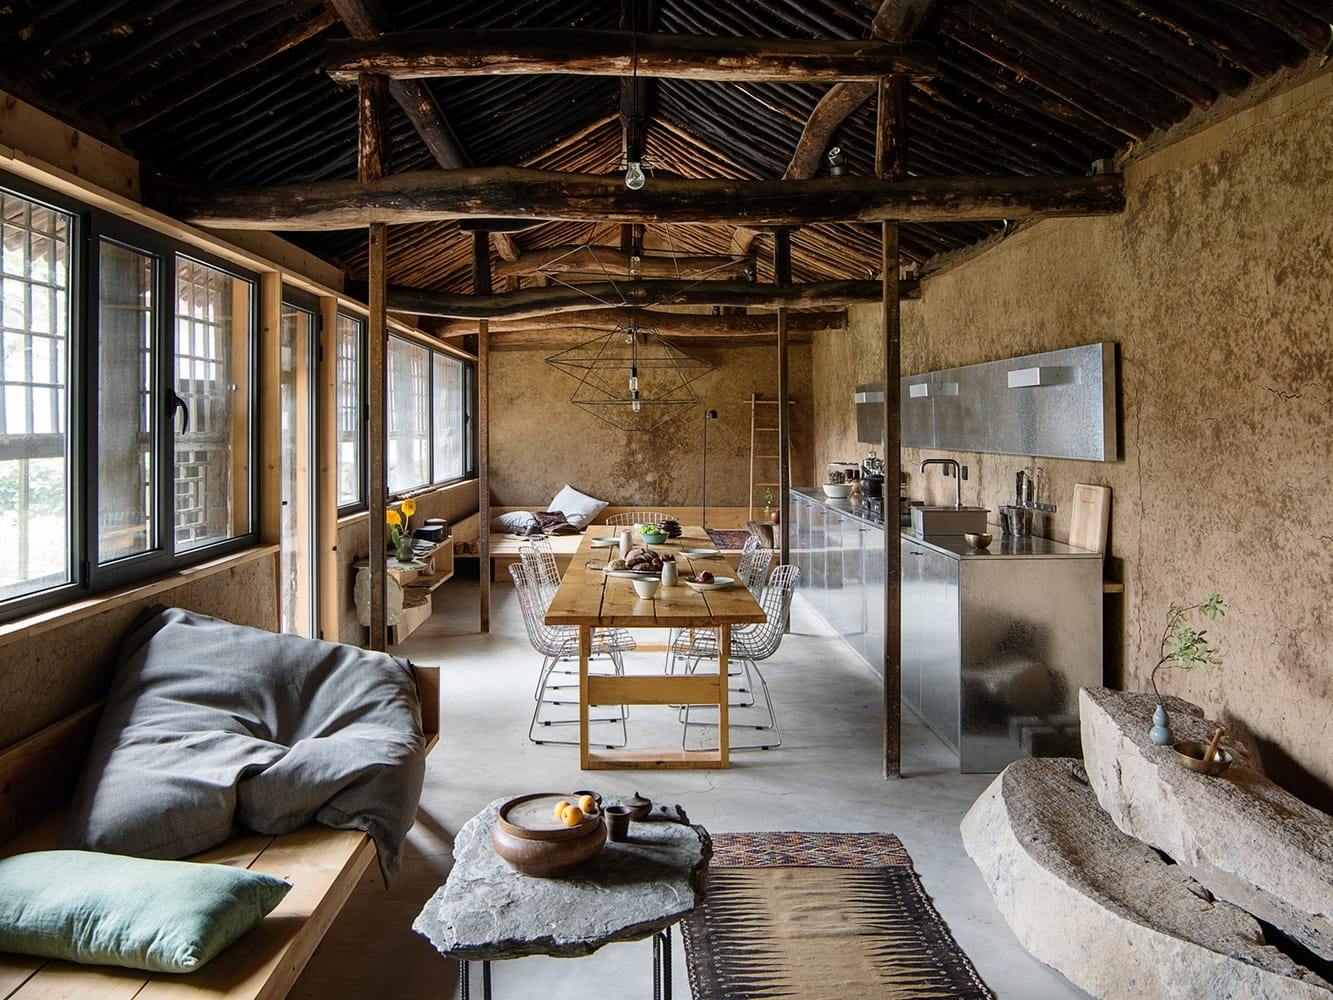 Dom wabi-sabi | Studio Cottage projektu Clou Architects